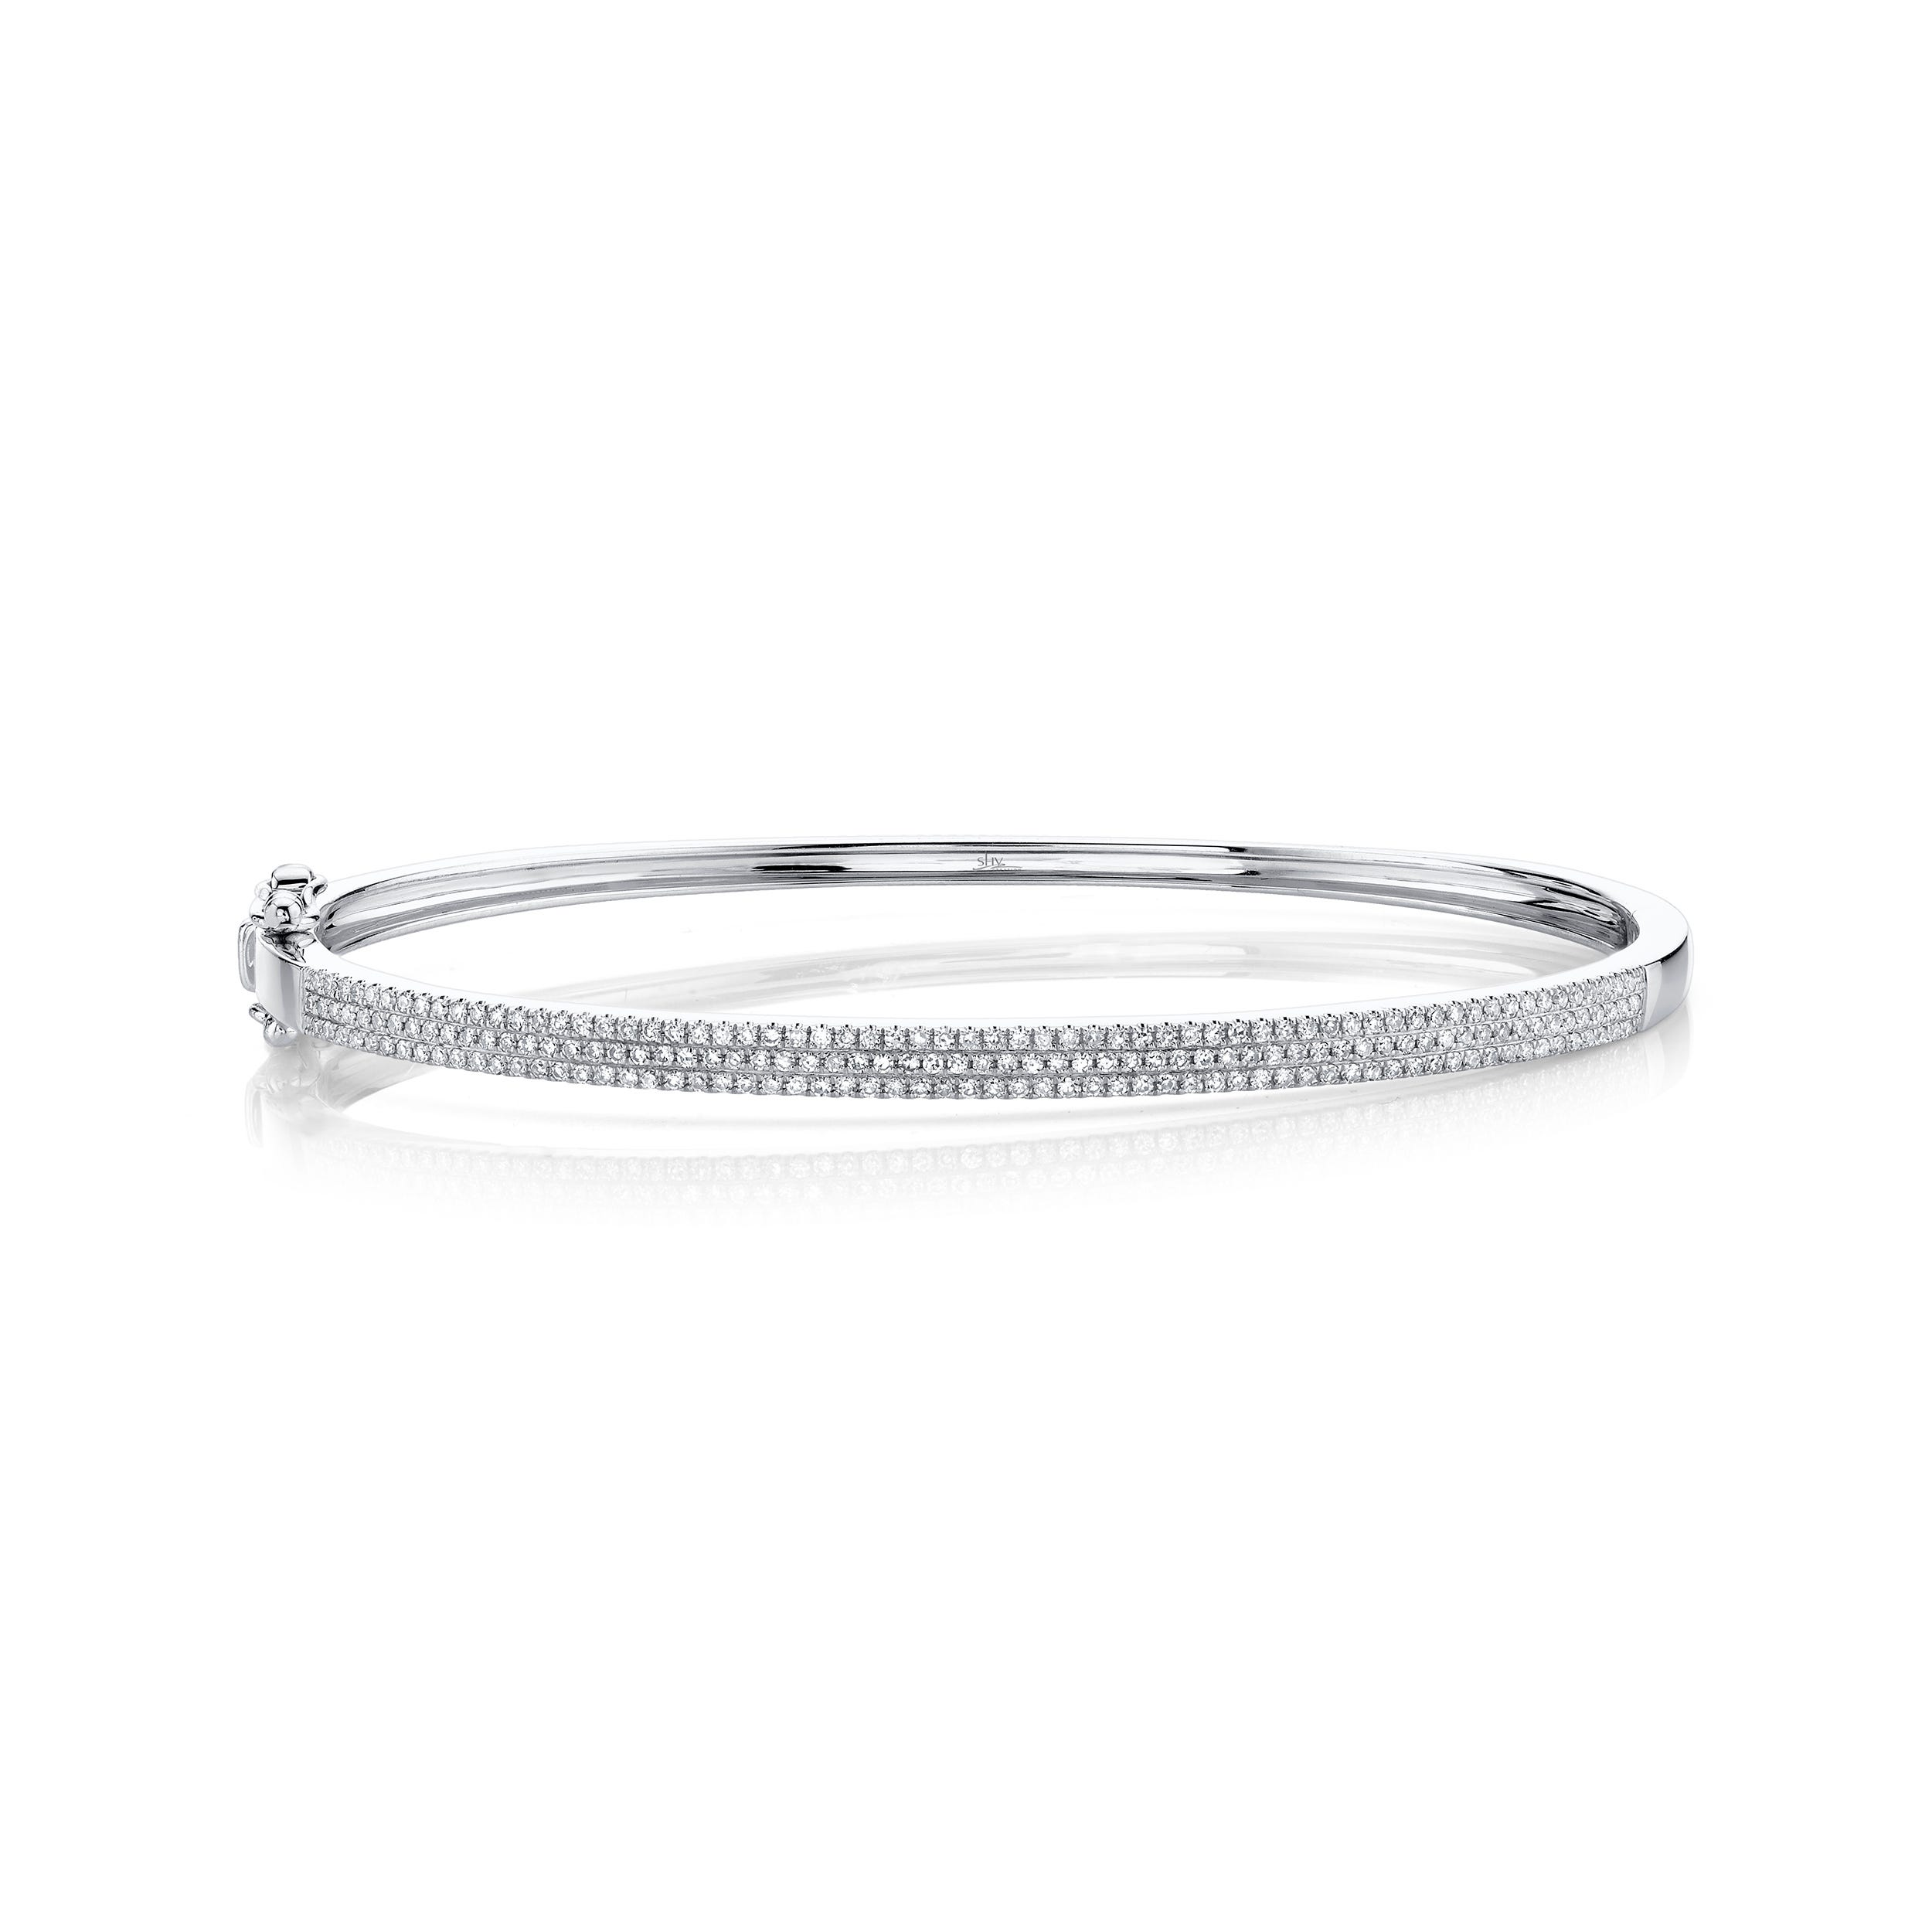 Shy Creation Diamond ½ct. Pave Bangle Bracelet 14k White Gold SC55002255ZS